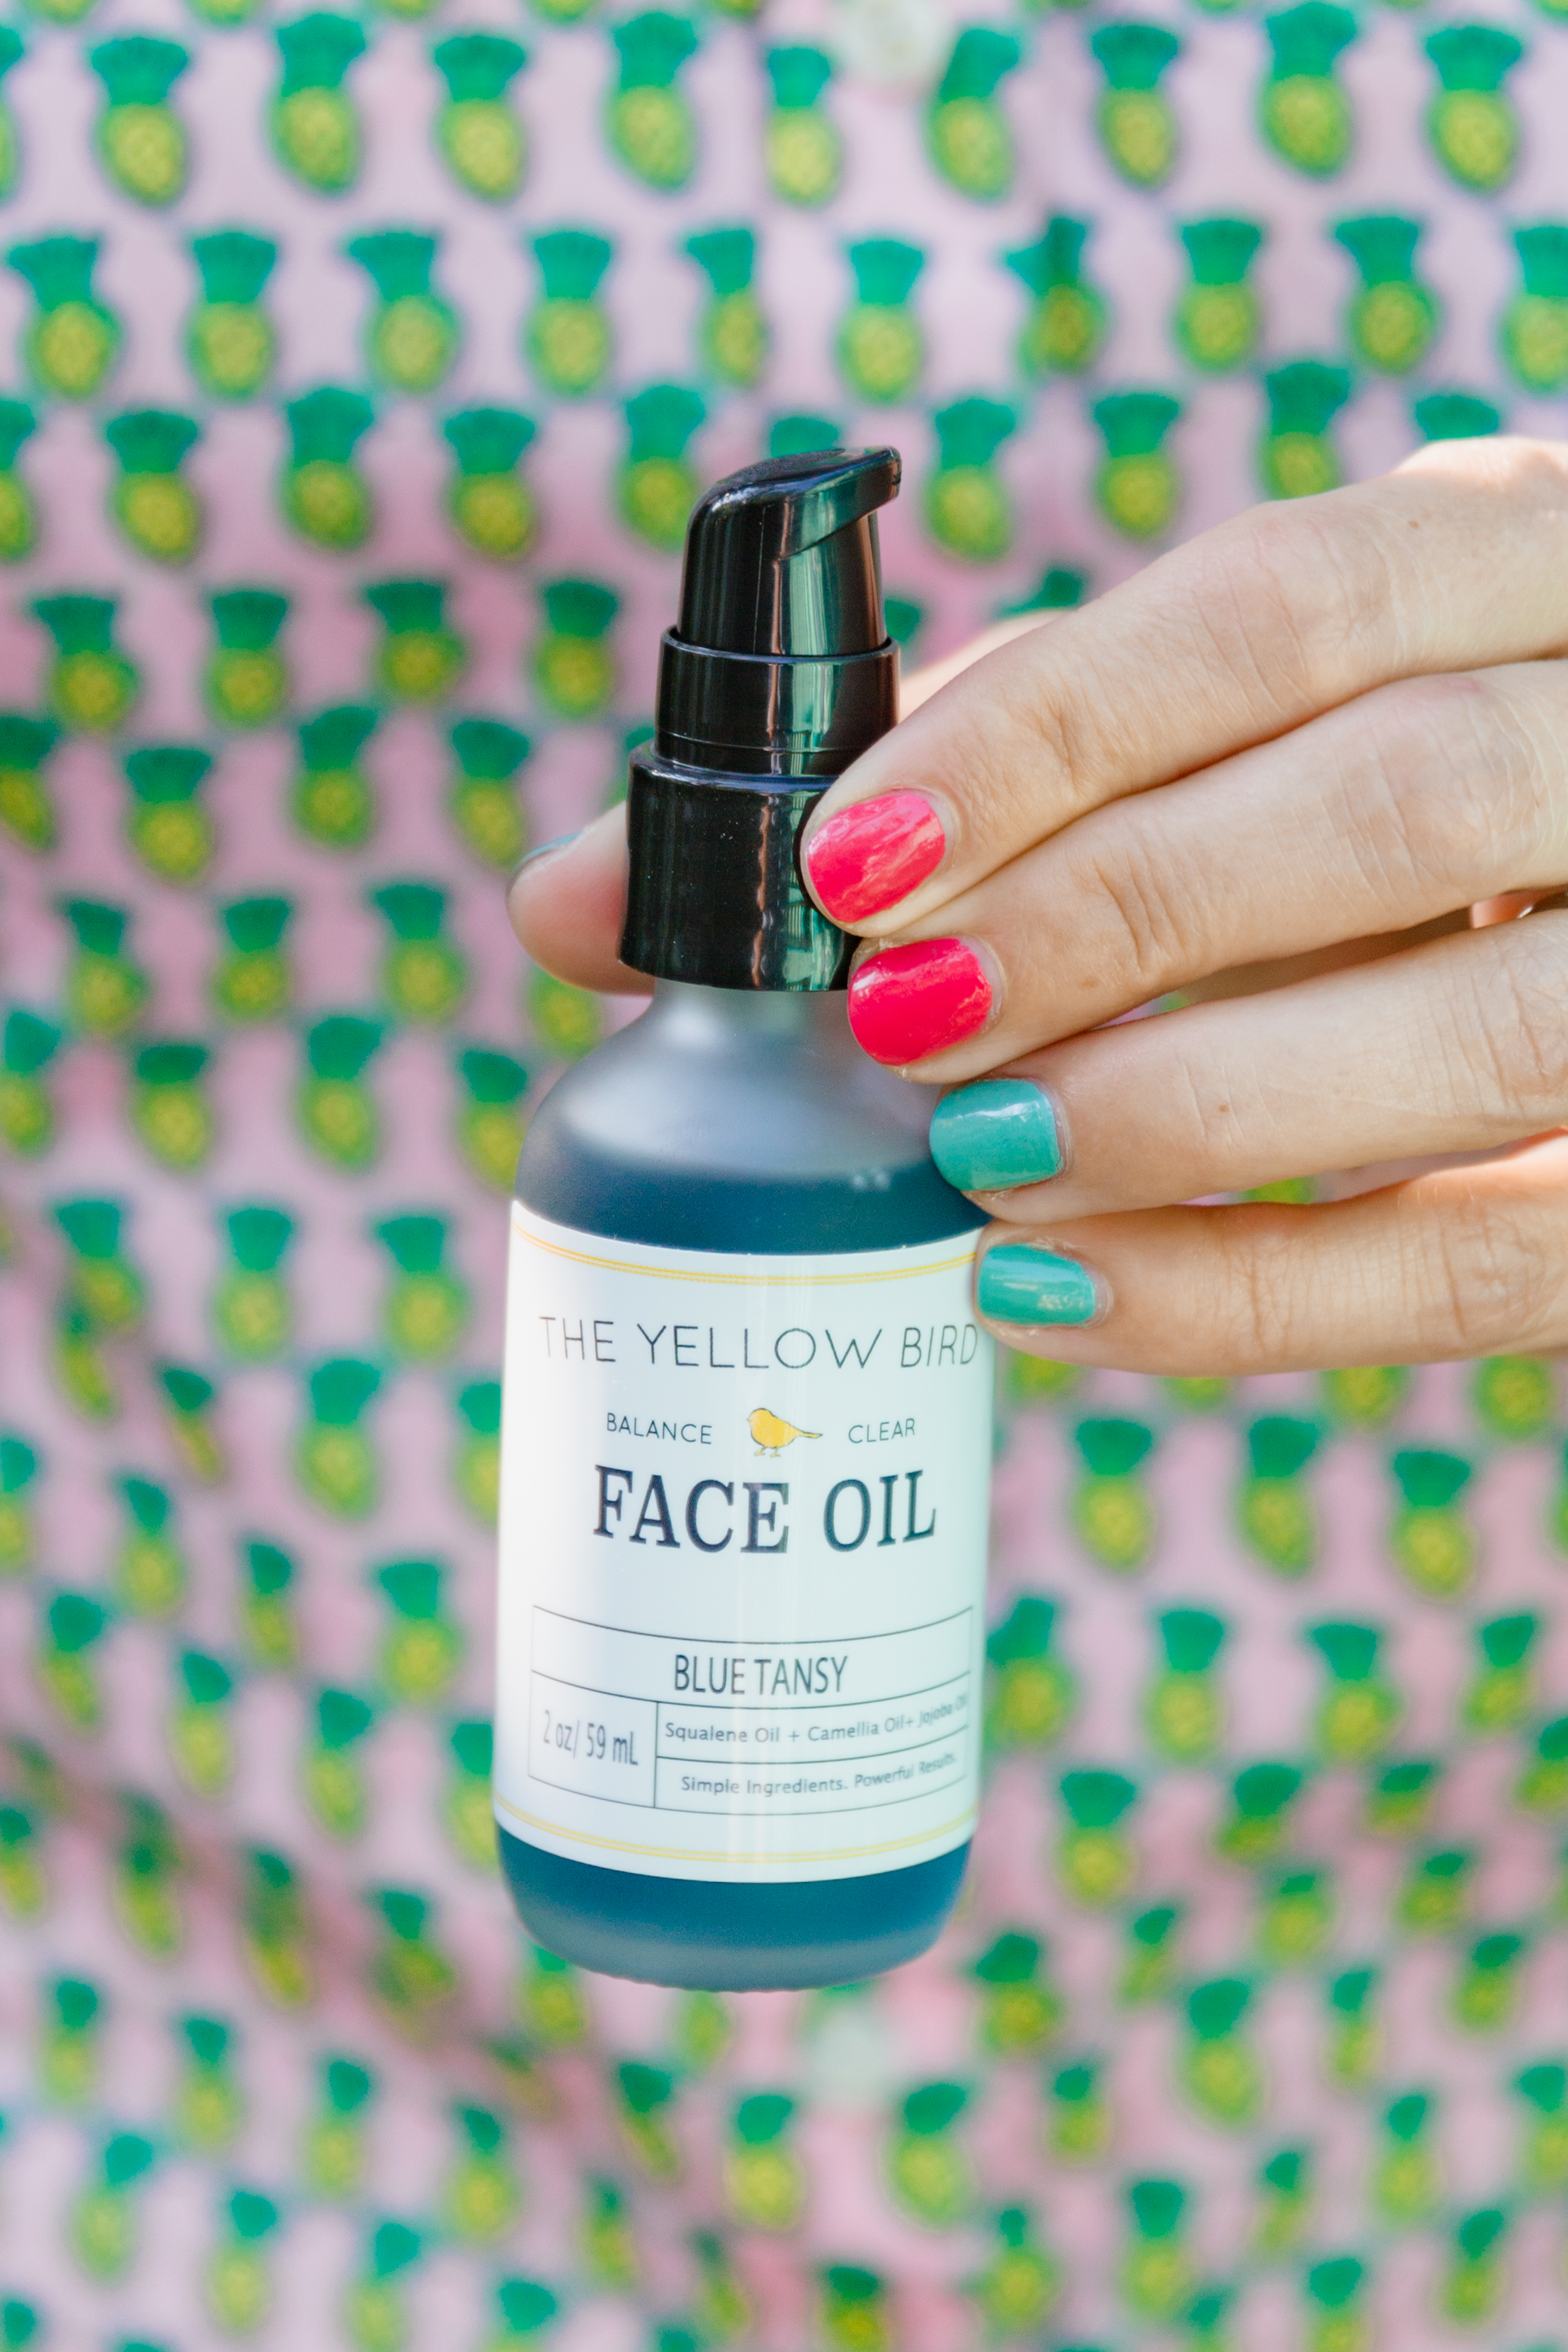 all natural face oil by the Yellow Bird